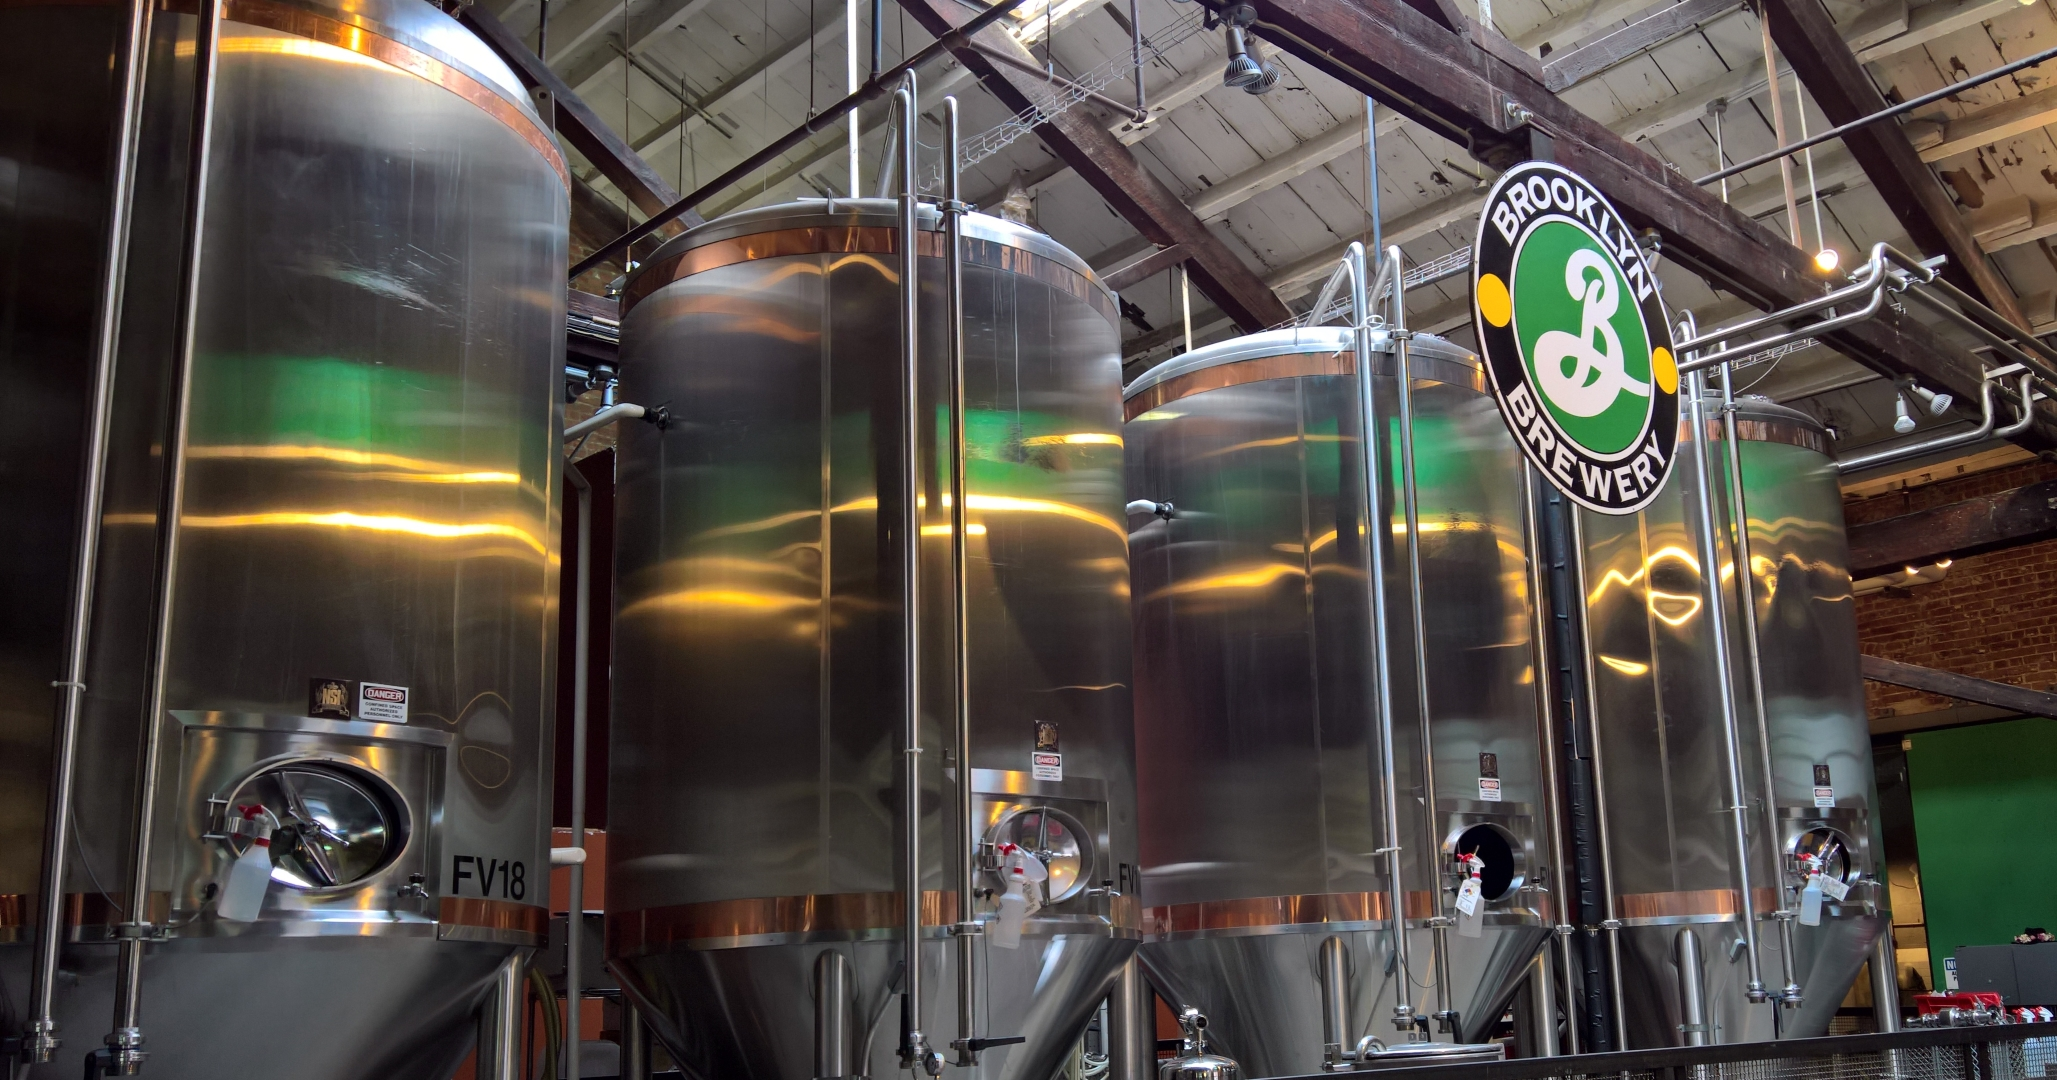 Brooklyn Brewery, Brooklyn, Bier in New York, Bier vor Ort, Bierreisen, Craft Beer, Brauerei